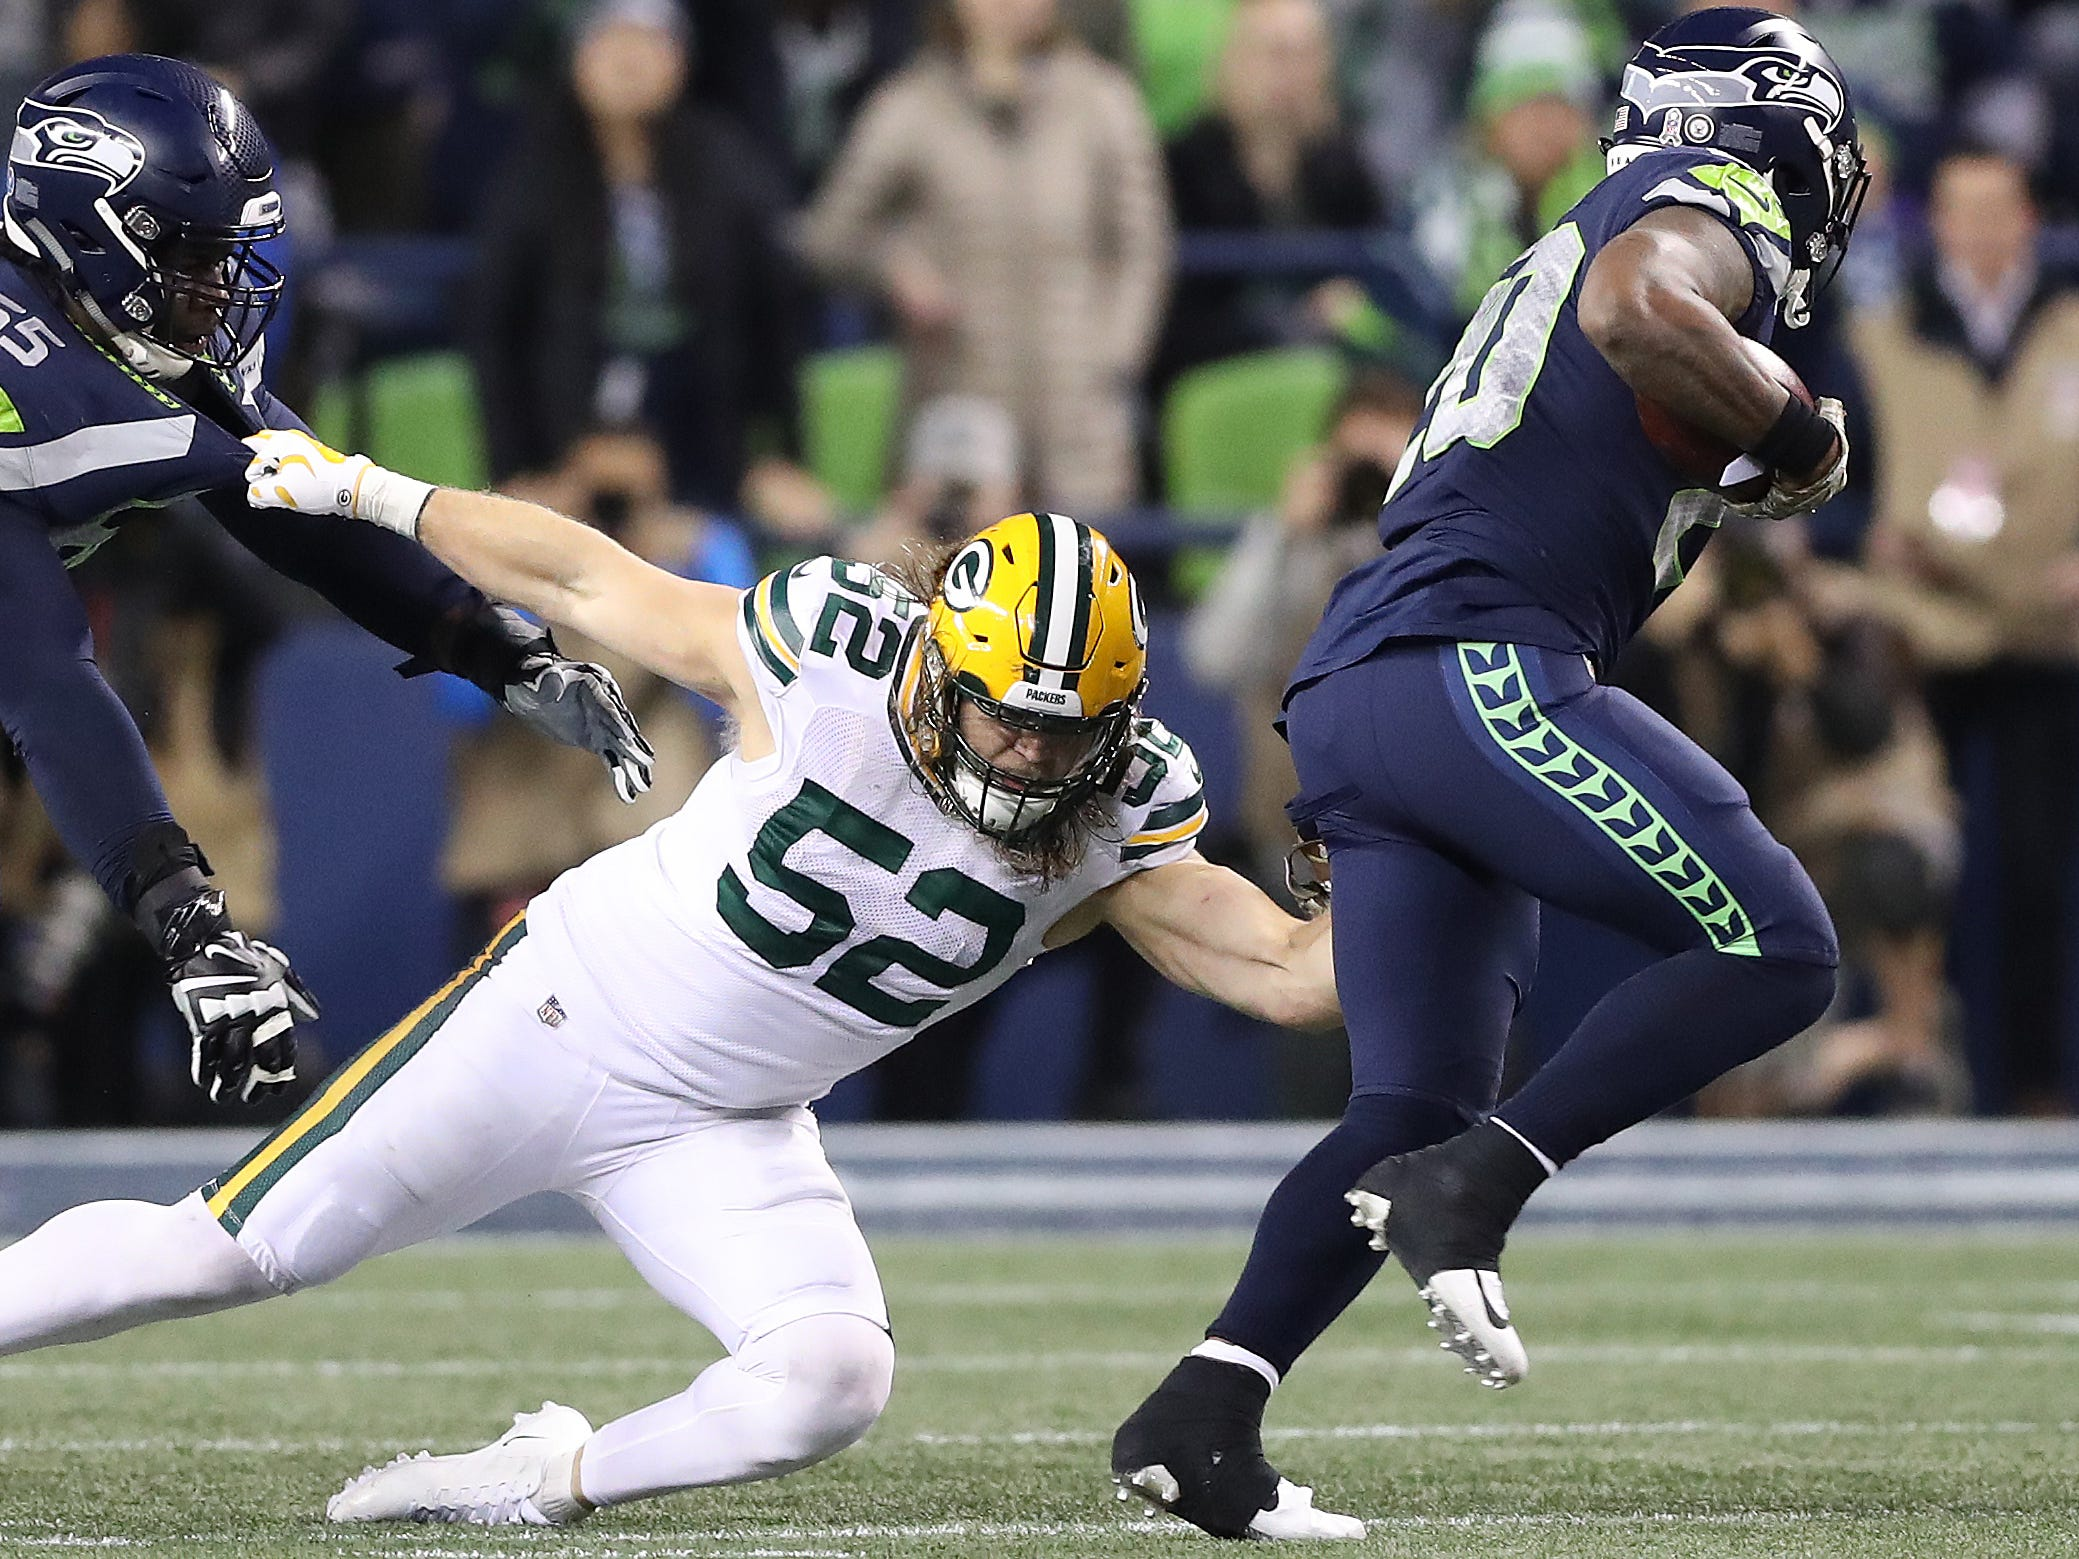 Green Bay Packers outside linebacker Clay Matthews (52) tries to tackle running back Rashaad Penny (20) against the Seattle Seahawks at CenturyLink Field Thursday, November 15, 2018 in Seattle, WA. Jim Matthews/USA TODAY NETWORK-Wis